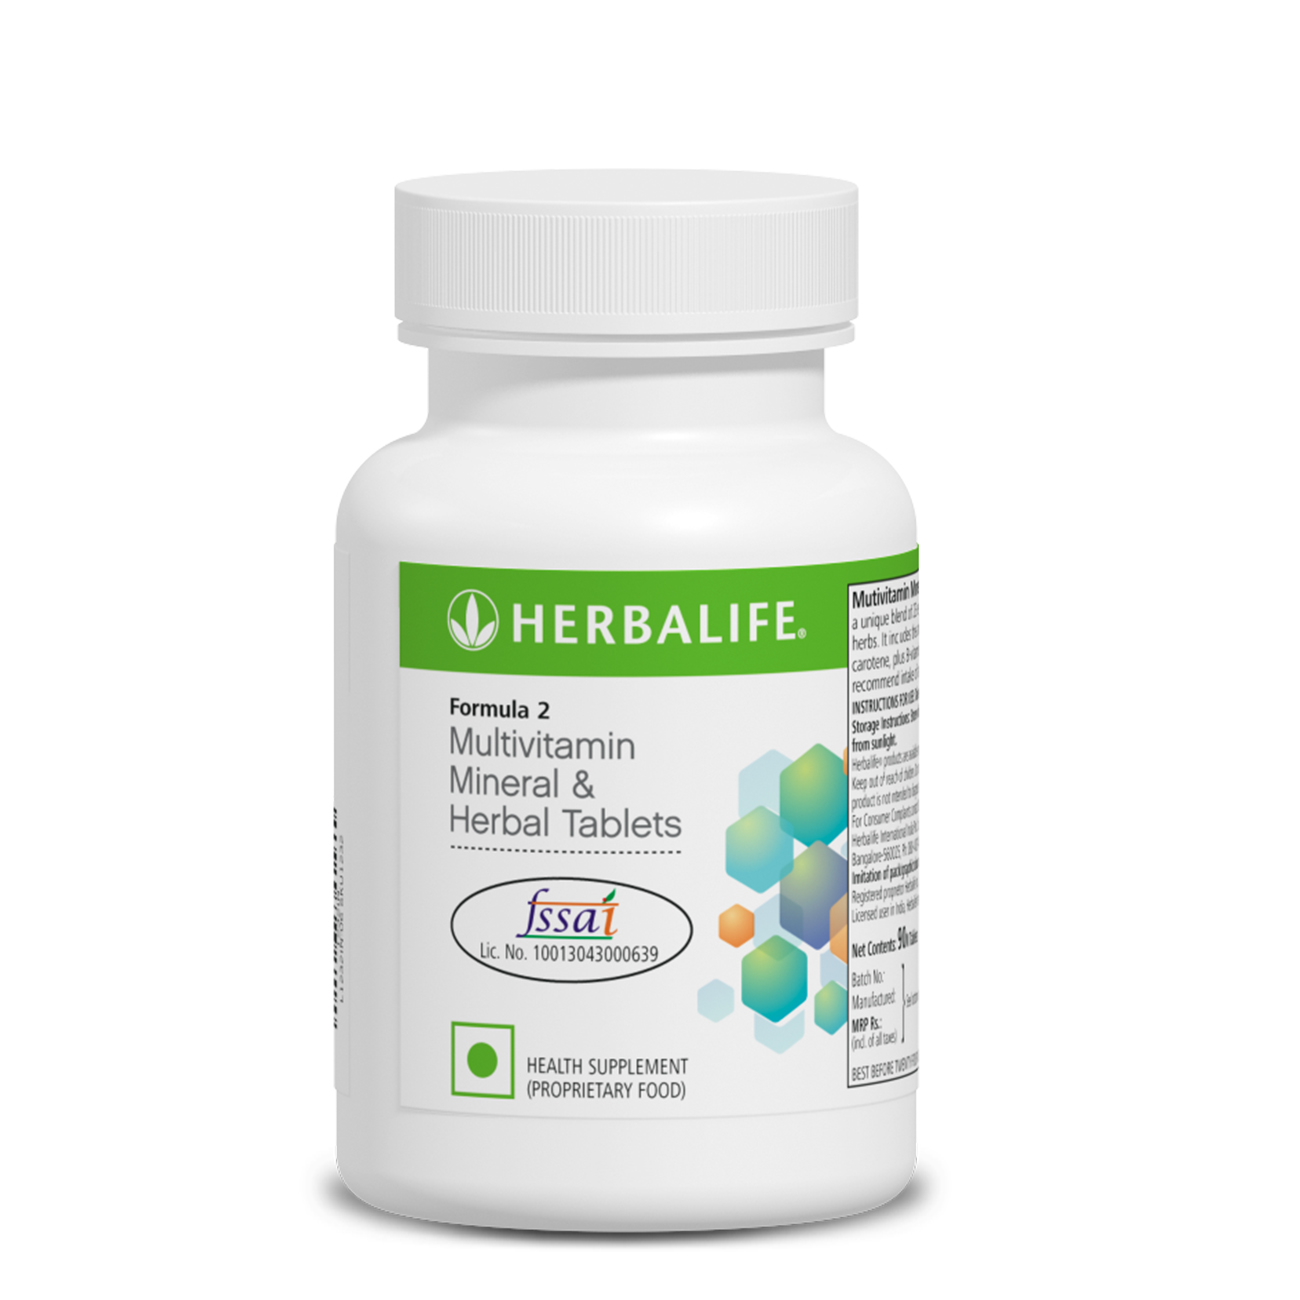 Multivitamin Mineral and Herbal Tablets